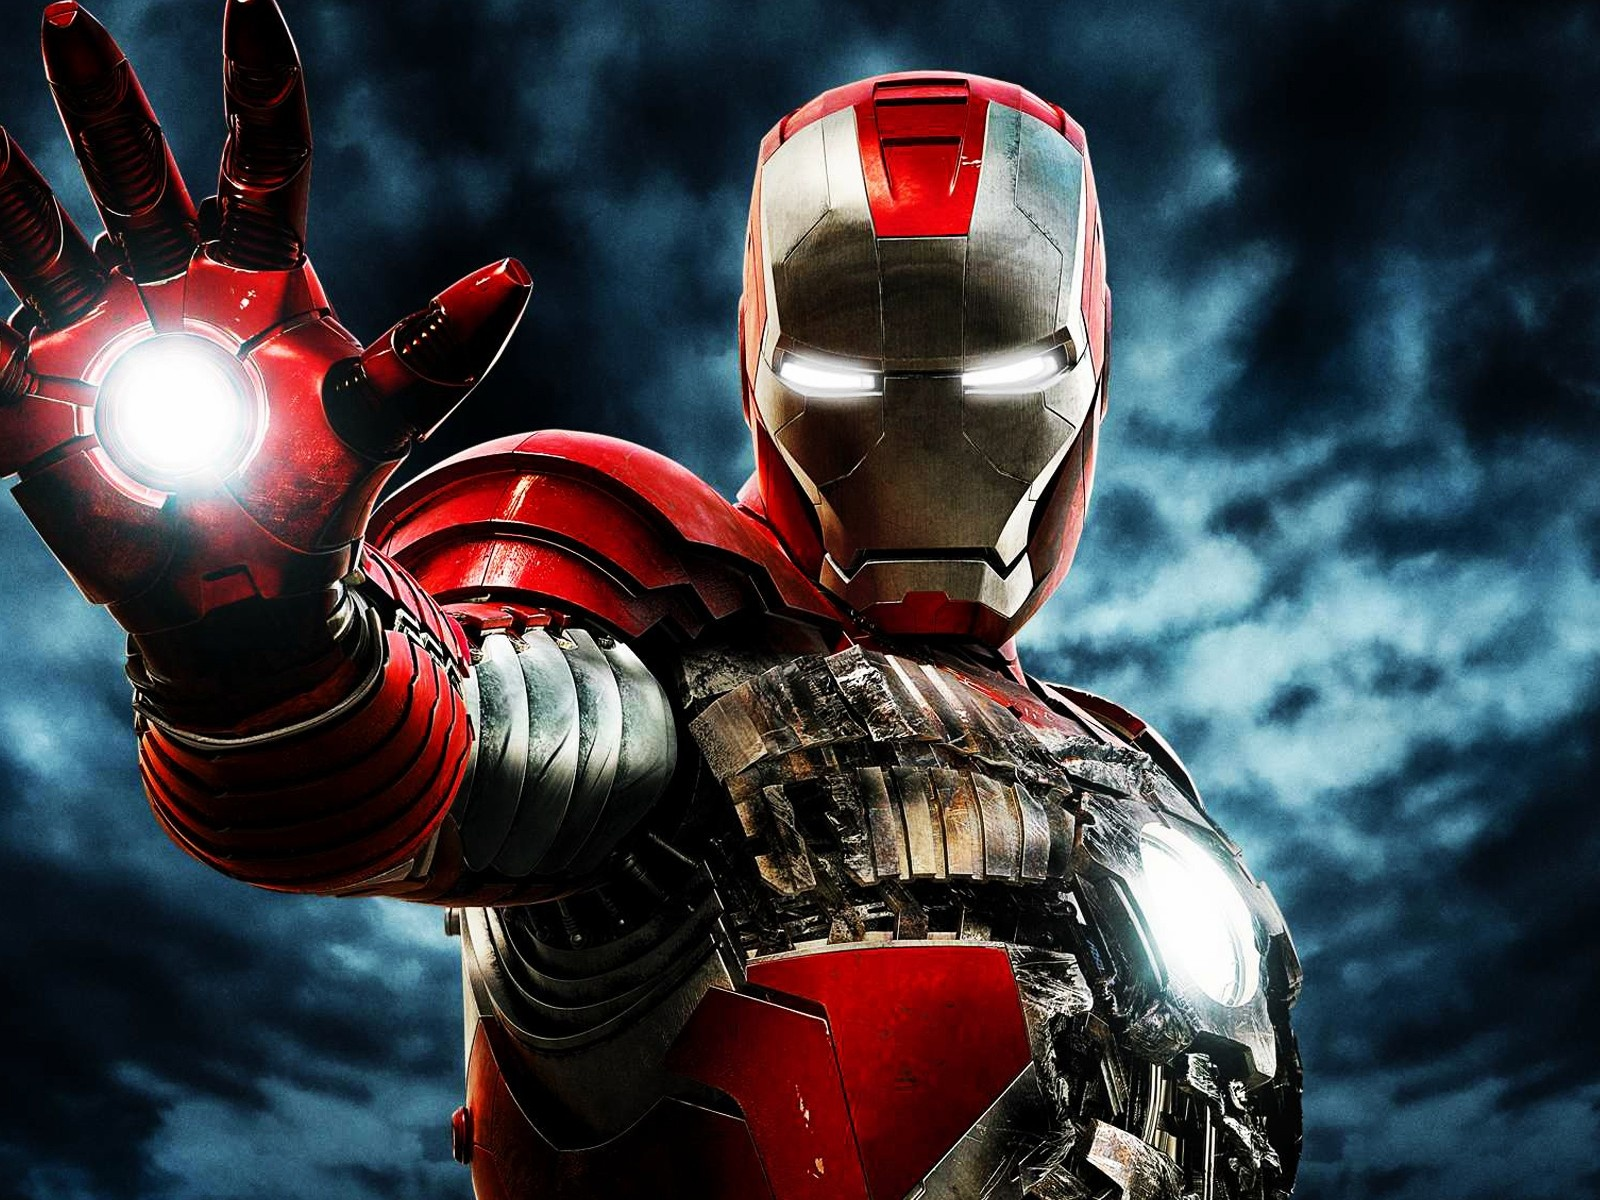 Movie wallpapers iron man wallpapers iron man wallpaper hd 6jpg 1600x1200